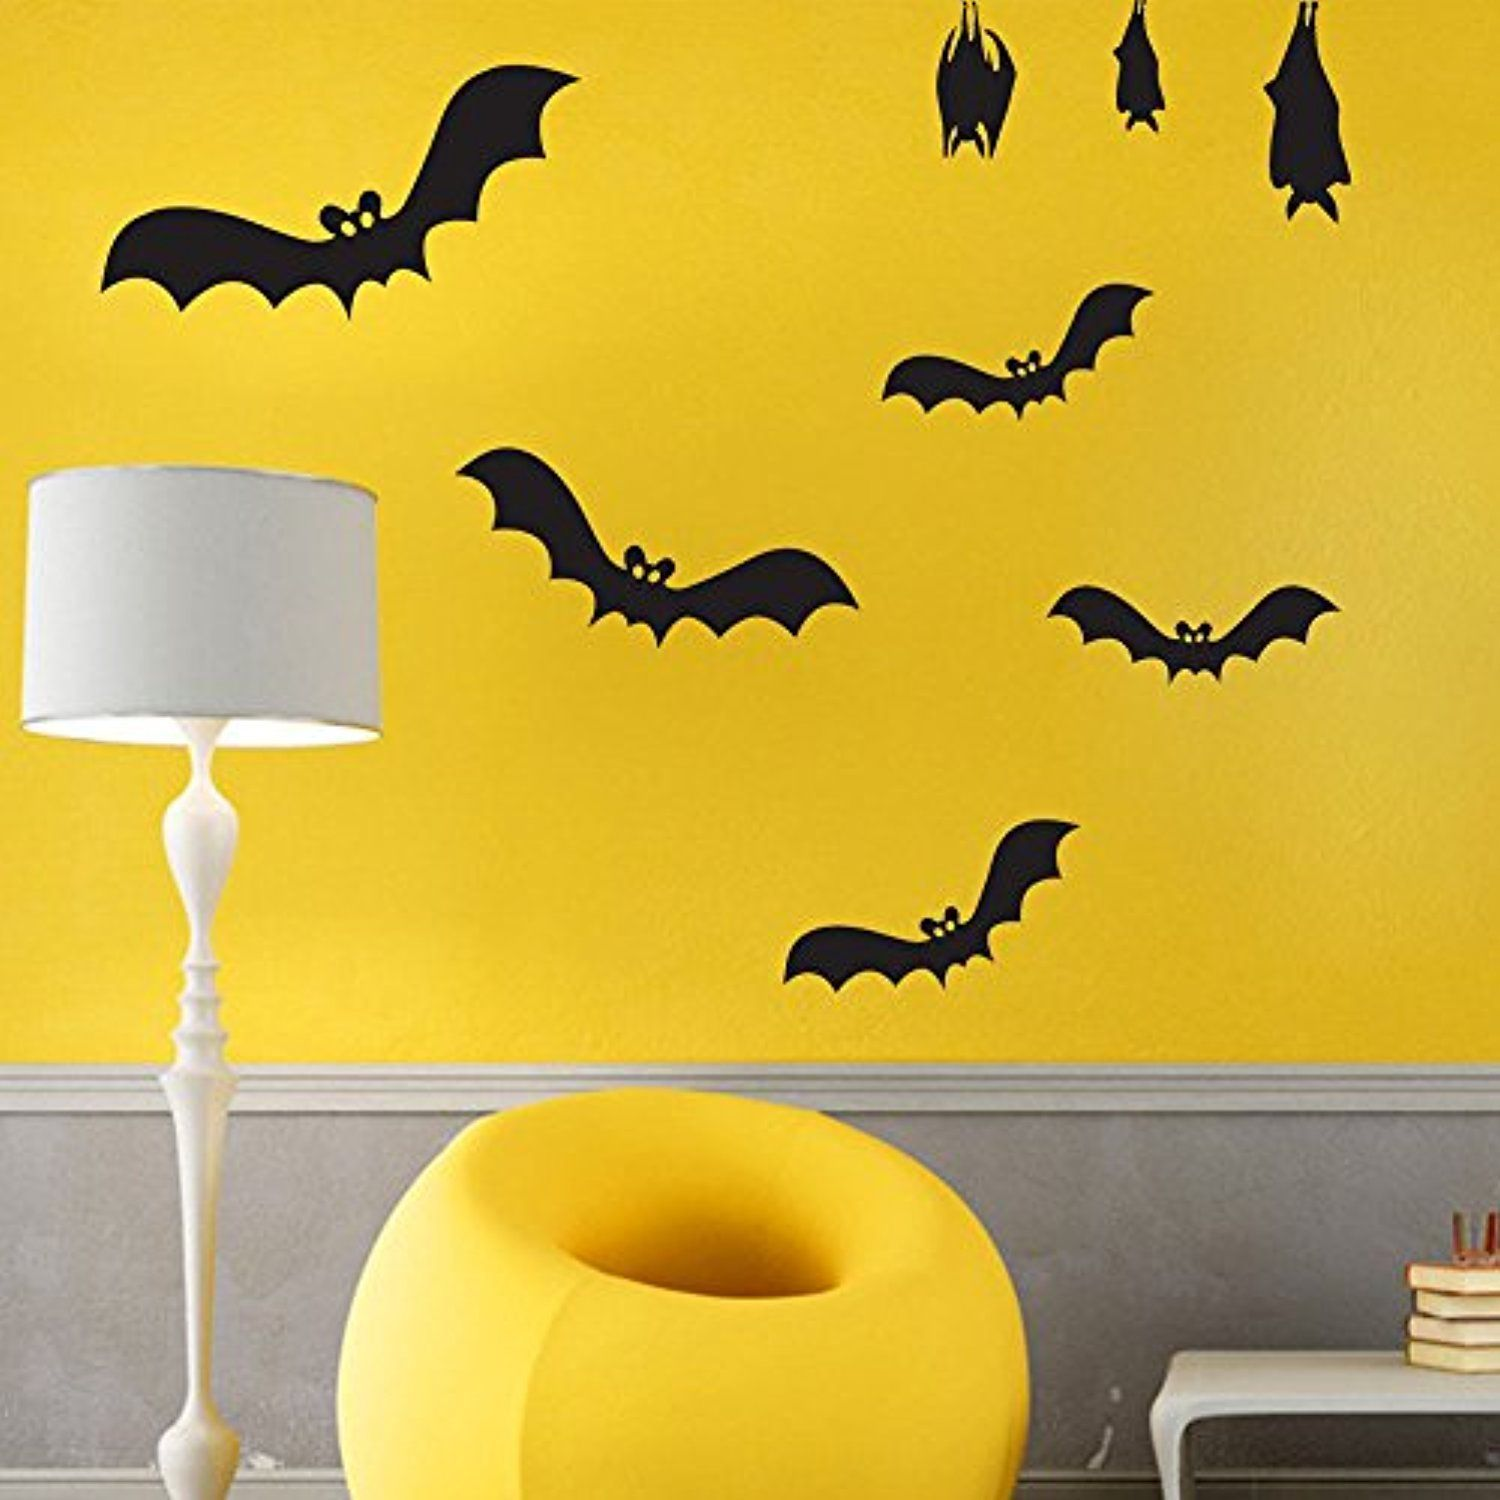 Nice Halloween Wall Art Motif - All About Wallart - adelgazare.info